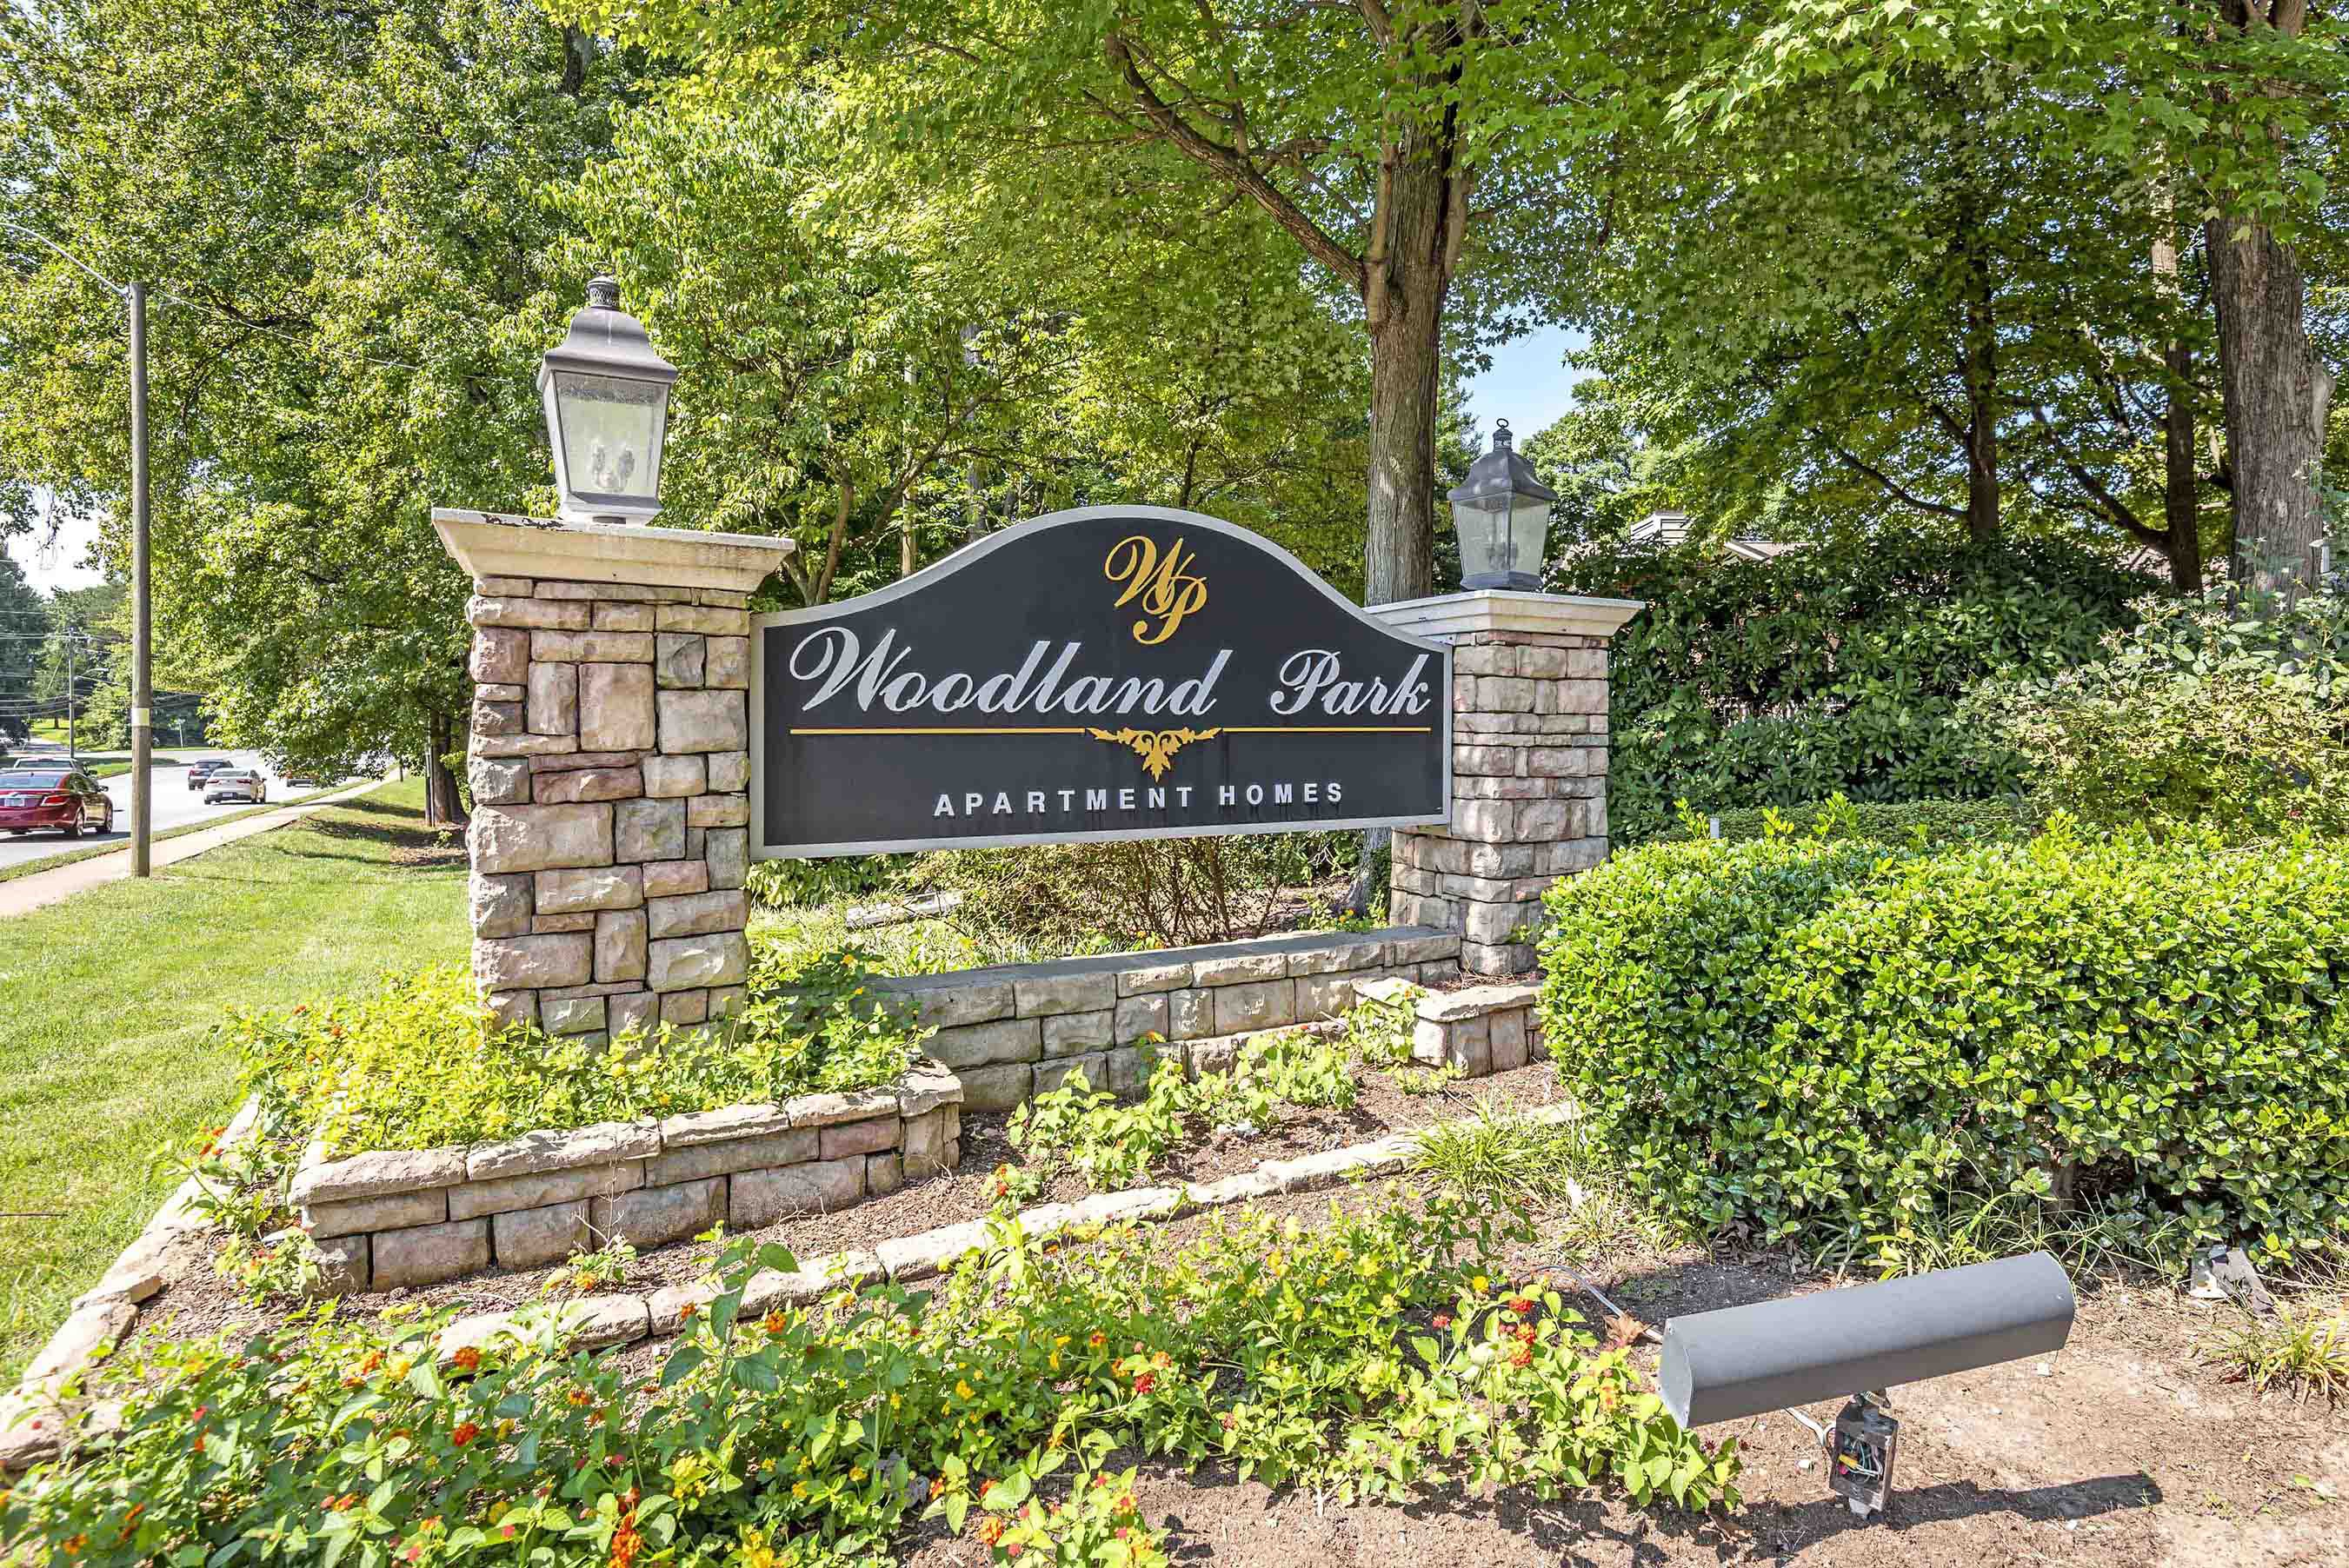 Apartments Near HPU Woodland Park Apts for High Point University Students in High Point, NC